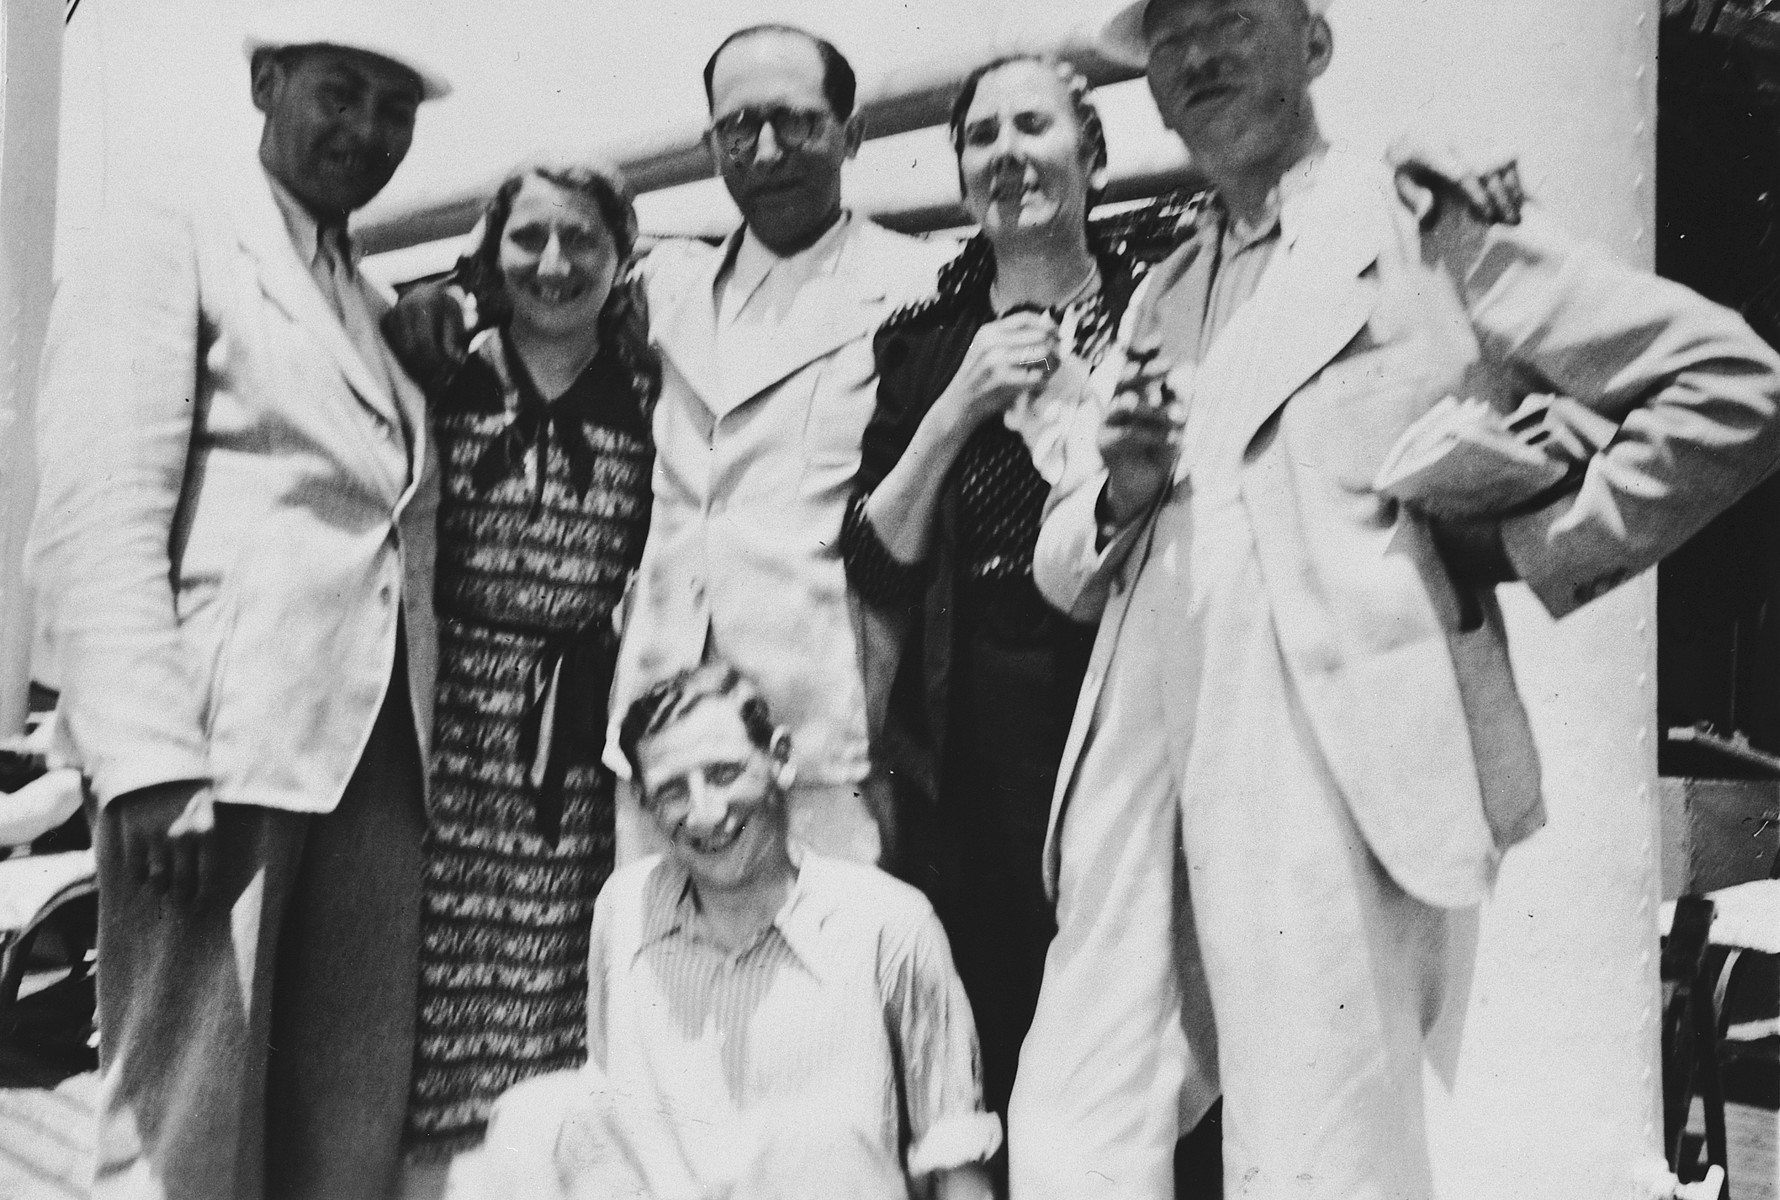 Jewish refugees from Breslau pose on the deck of the St. Louis.  Seated in front is Ernst Meyer.  Standing left to right are Kurt Marcus, Ilse Marcus, a friend from Breslau, Elfriede Meyer, and Berthold Meyer.